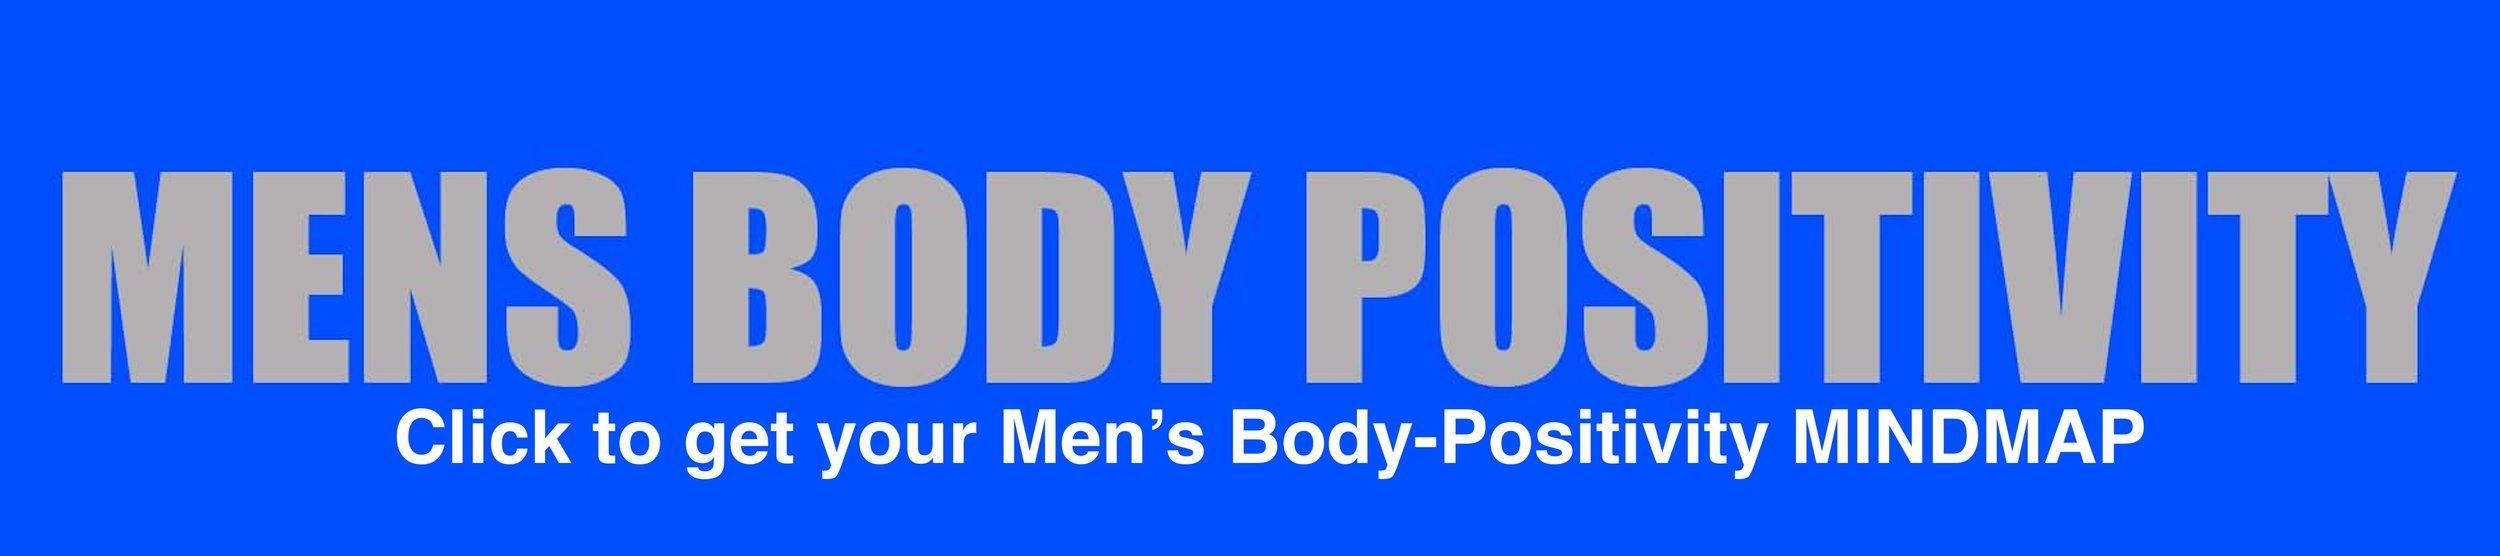 Stop struggling and worrying now! The Men's Body-Positivity Course is a gentle step-by-step method.